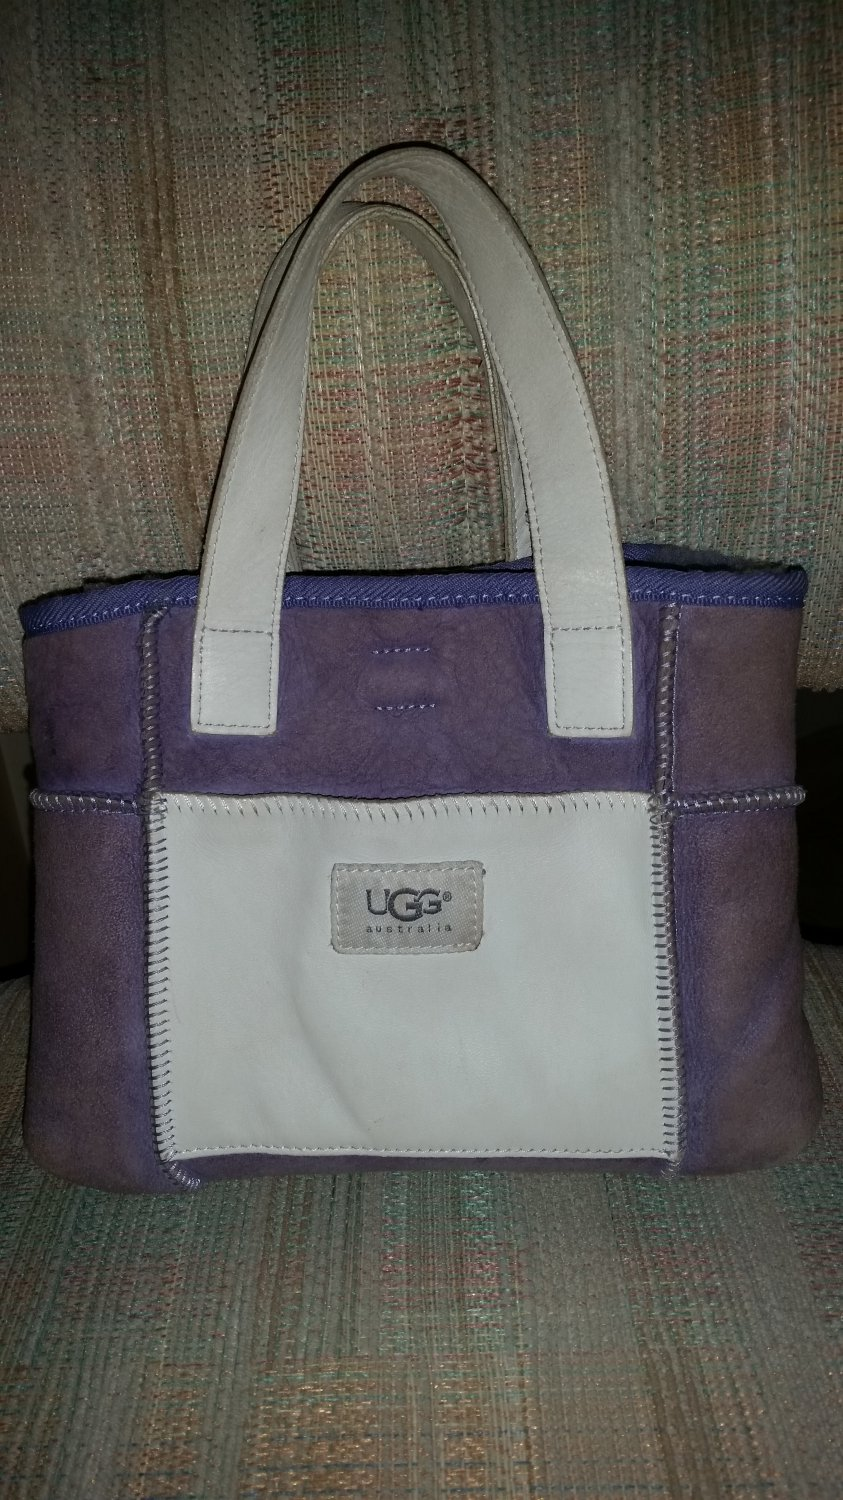 UGG Soft Lilac Purple Suede and White Leather Double Strap Purse!